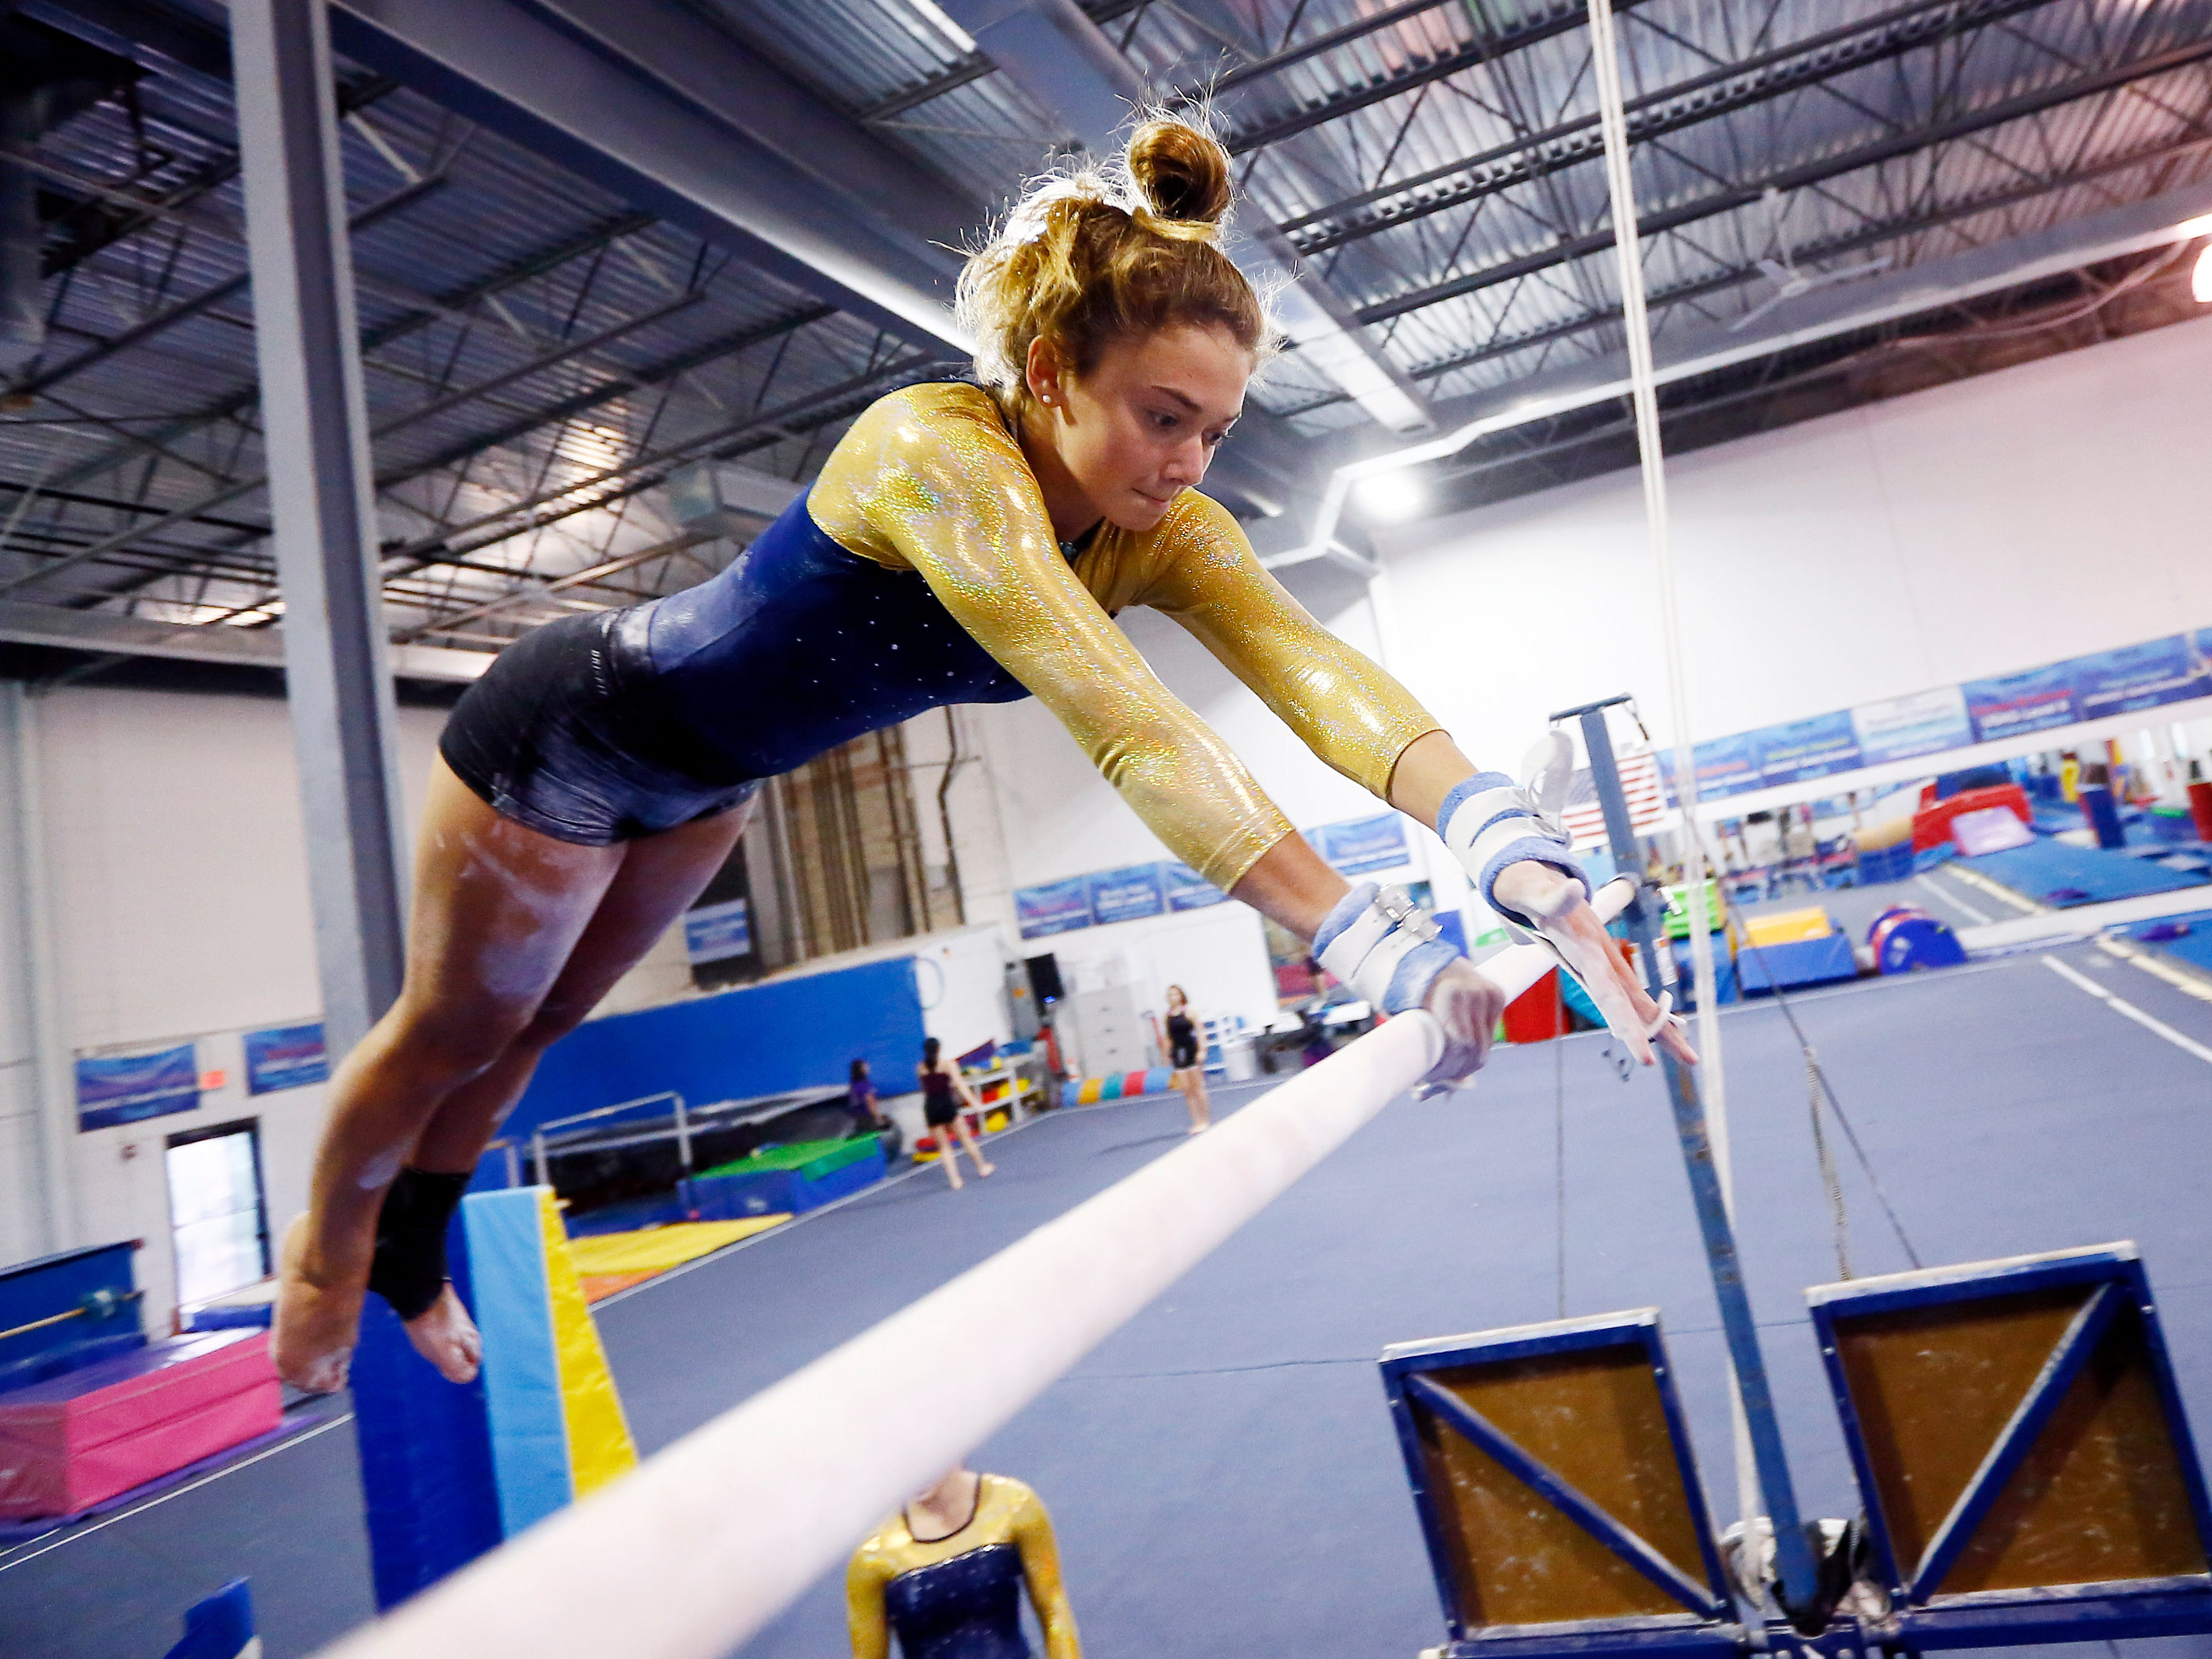 Roxbury High School junior Ashley Miller works on the uneven bar during gymnastics practice at Northern Elite Gymnastics & Cheer in Flanders. Roxbury has just launched a girls gymnastics team.  September 25, 2018, Flanders, NJ